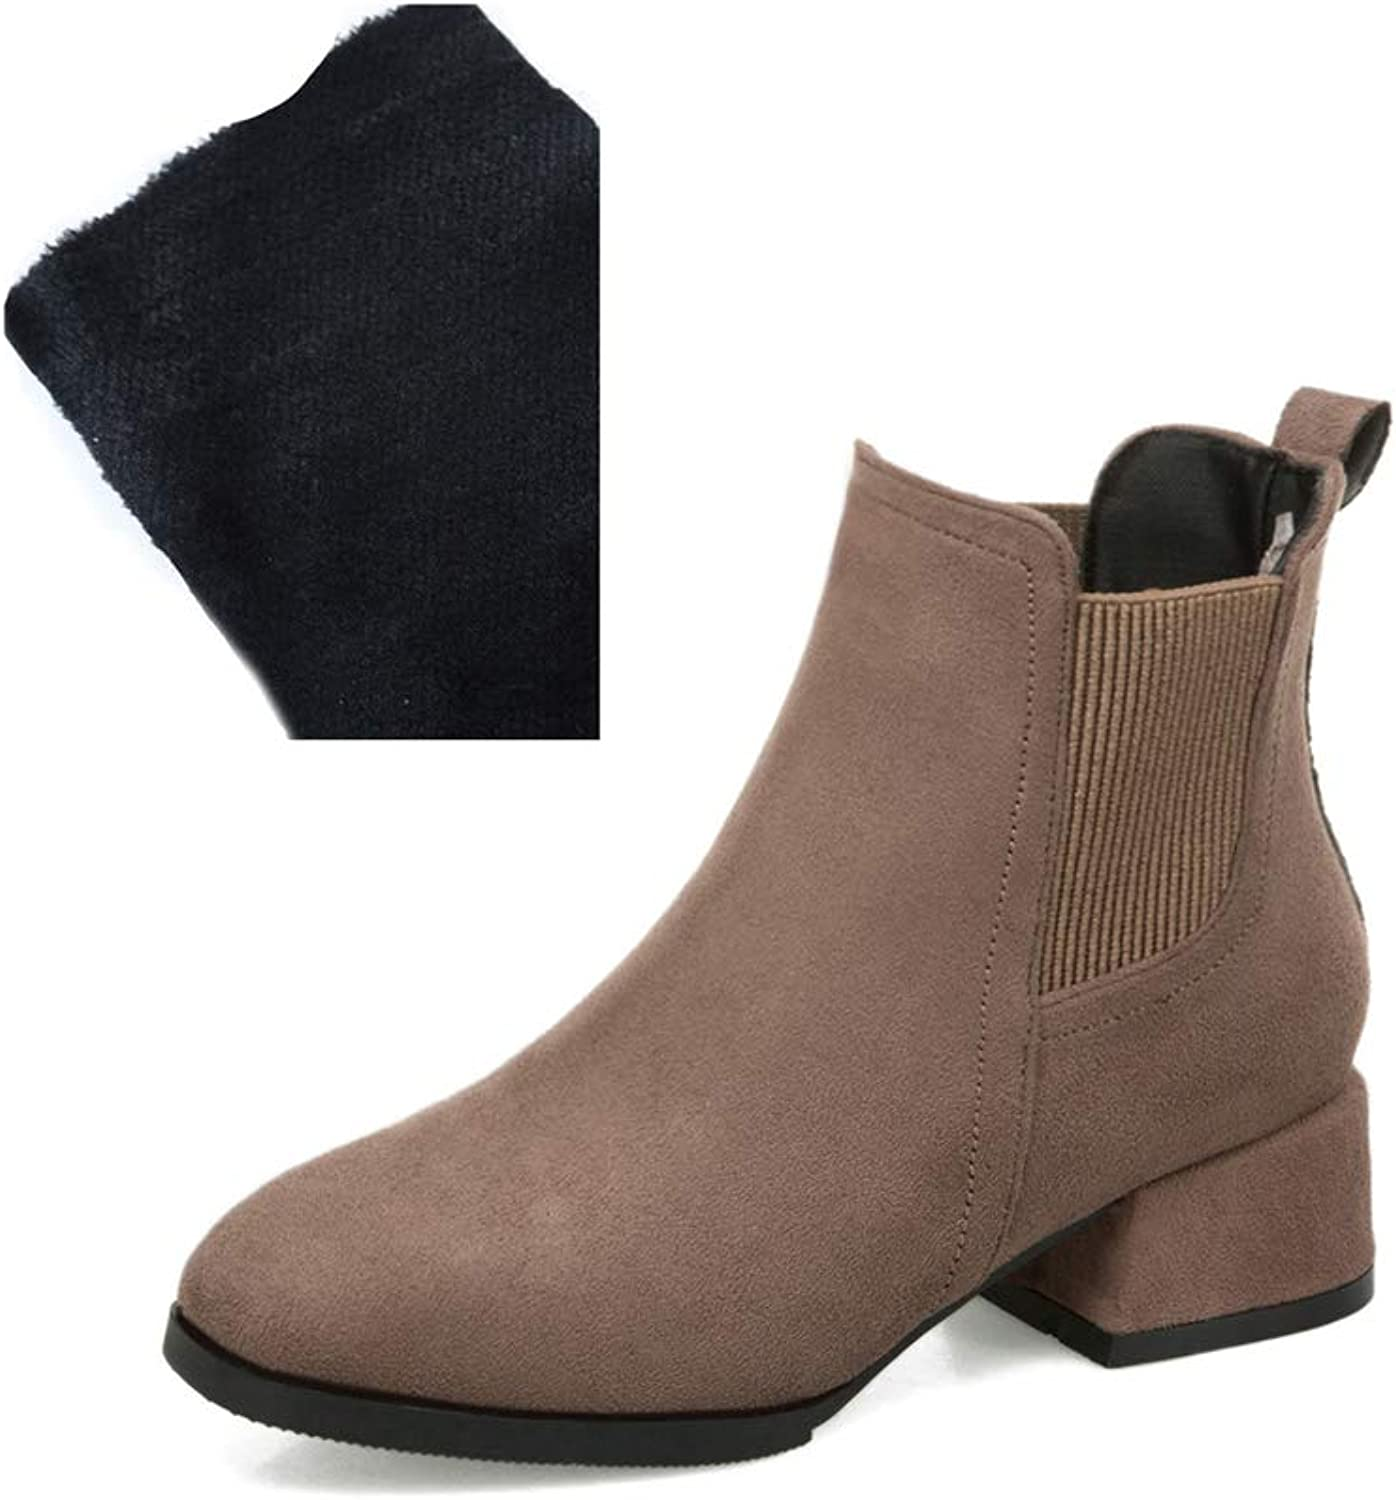 Women Ladies Chelsea Ankle Boots Chunky Middle Heel Booties Winter Slip On Boots